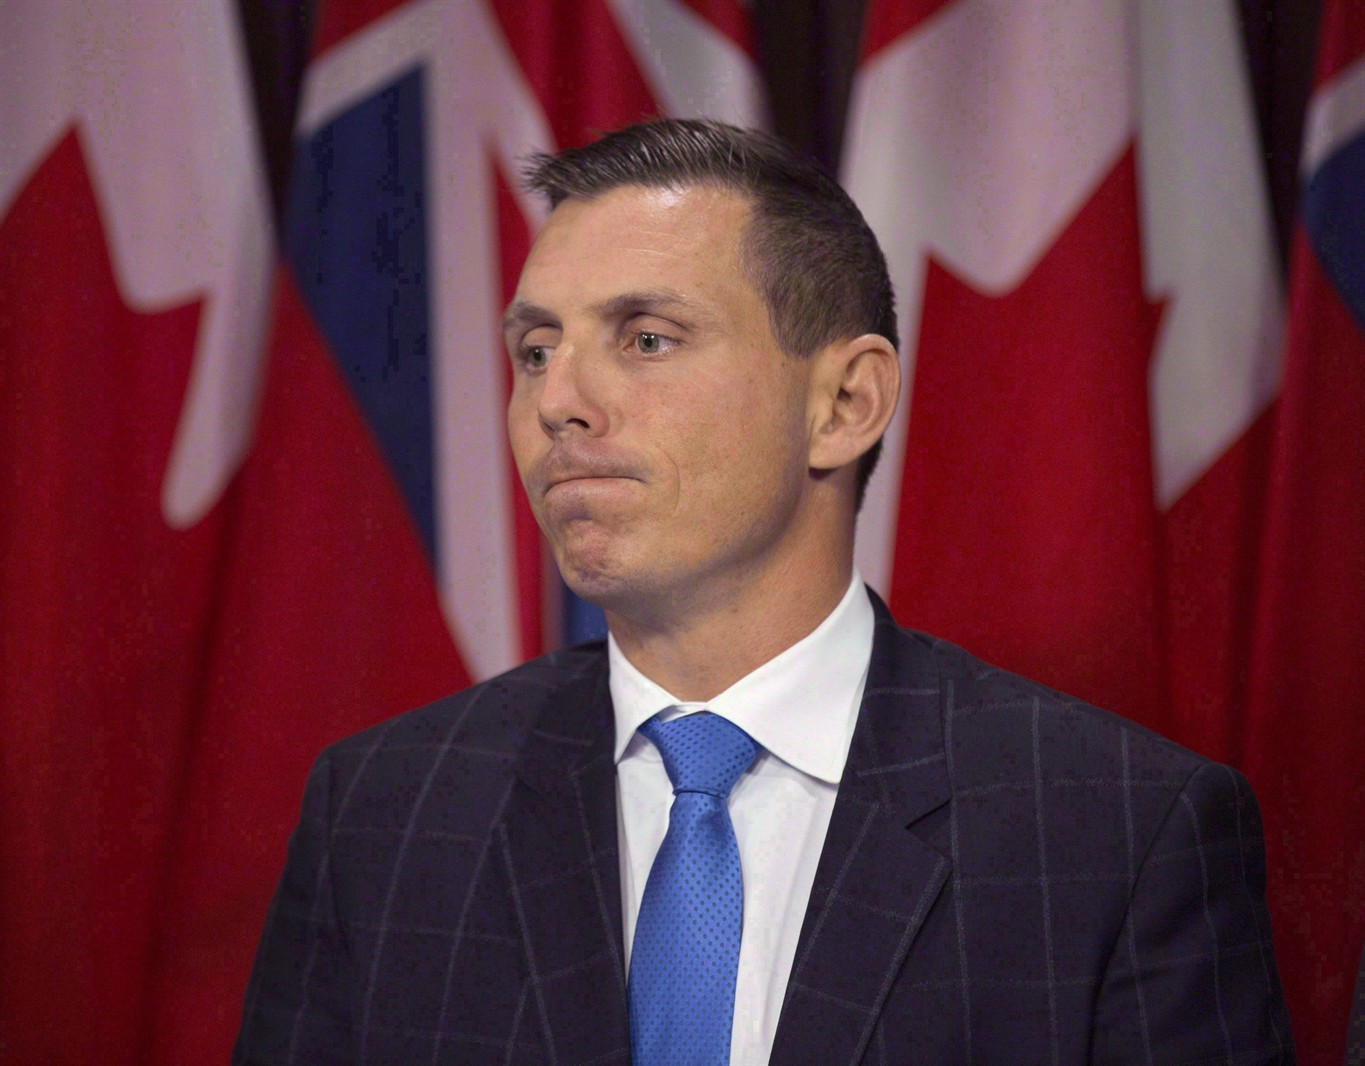 Politicians react to allegations against Ontario PC Leader Patrick Brown